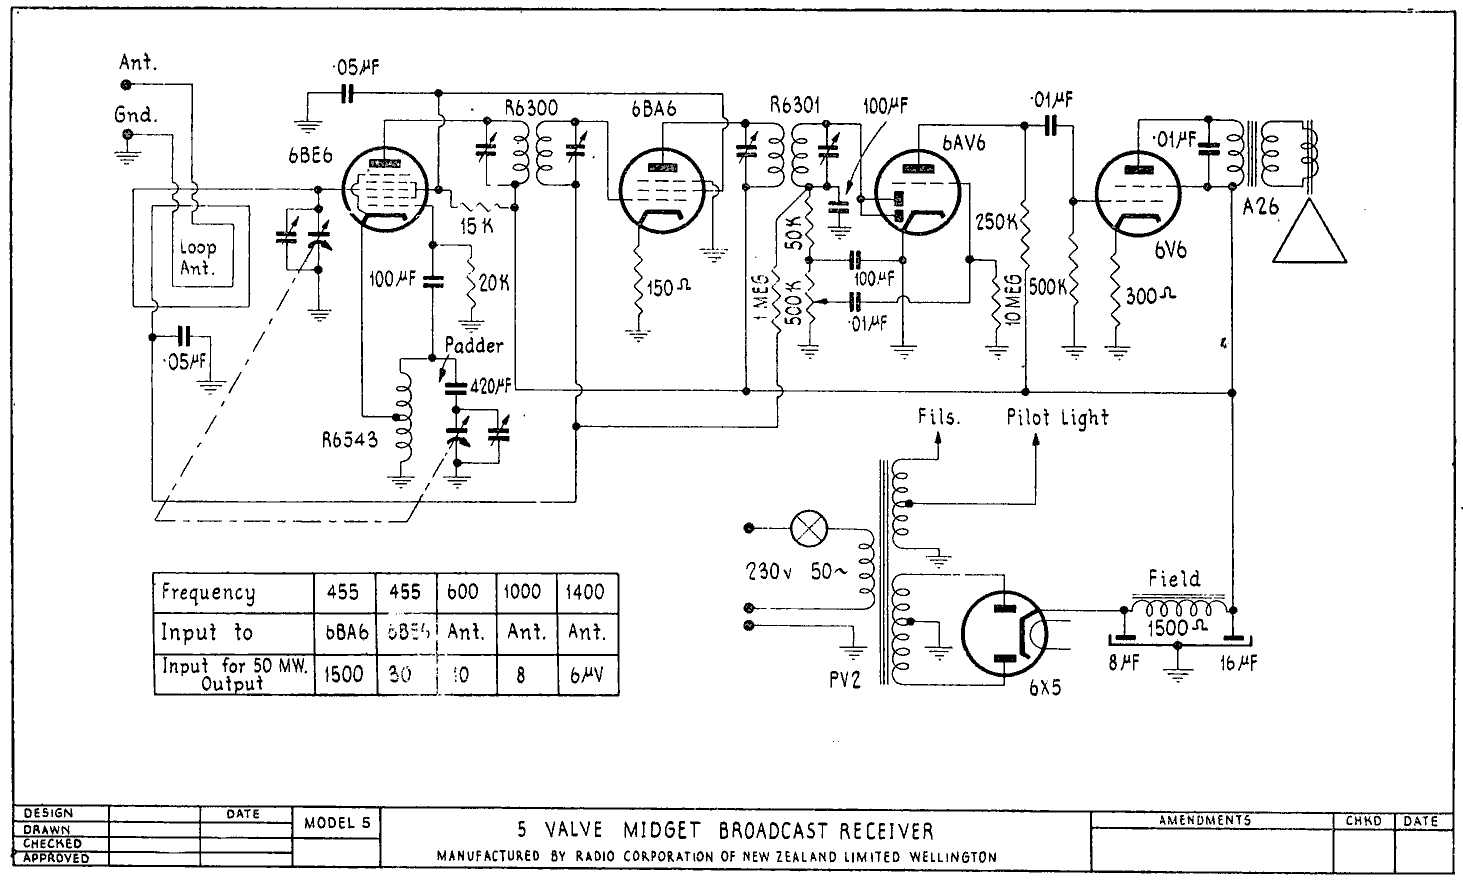 1950 Columbus model 5 Schematic